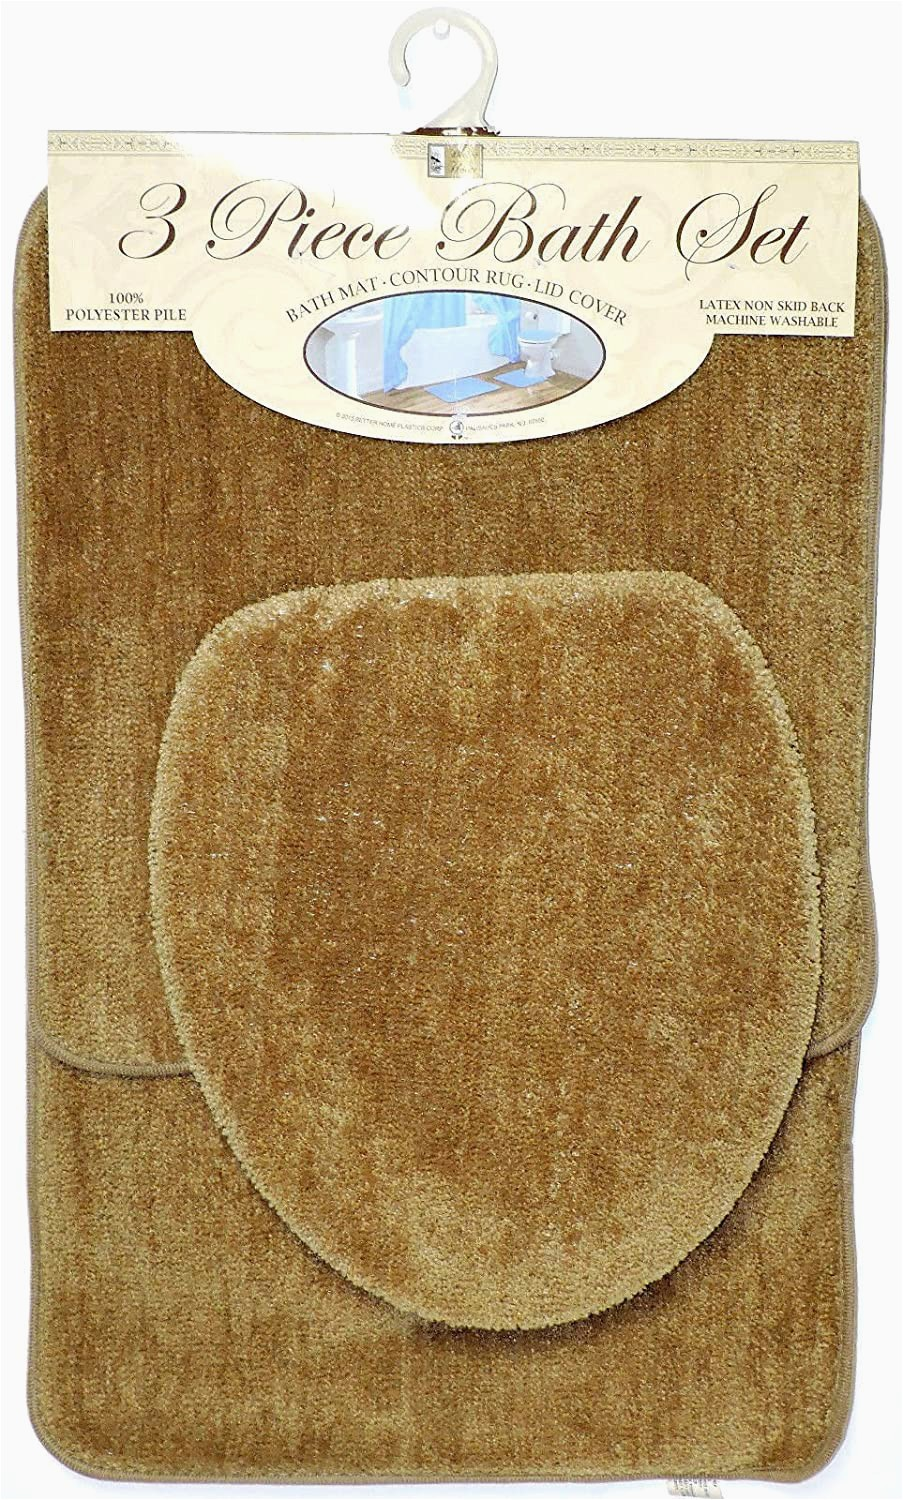 Light Brown Bathroom Rugs Amazon Homestyle 3 Piece Bath Rug Set Light Brown